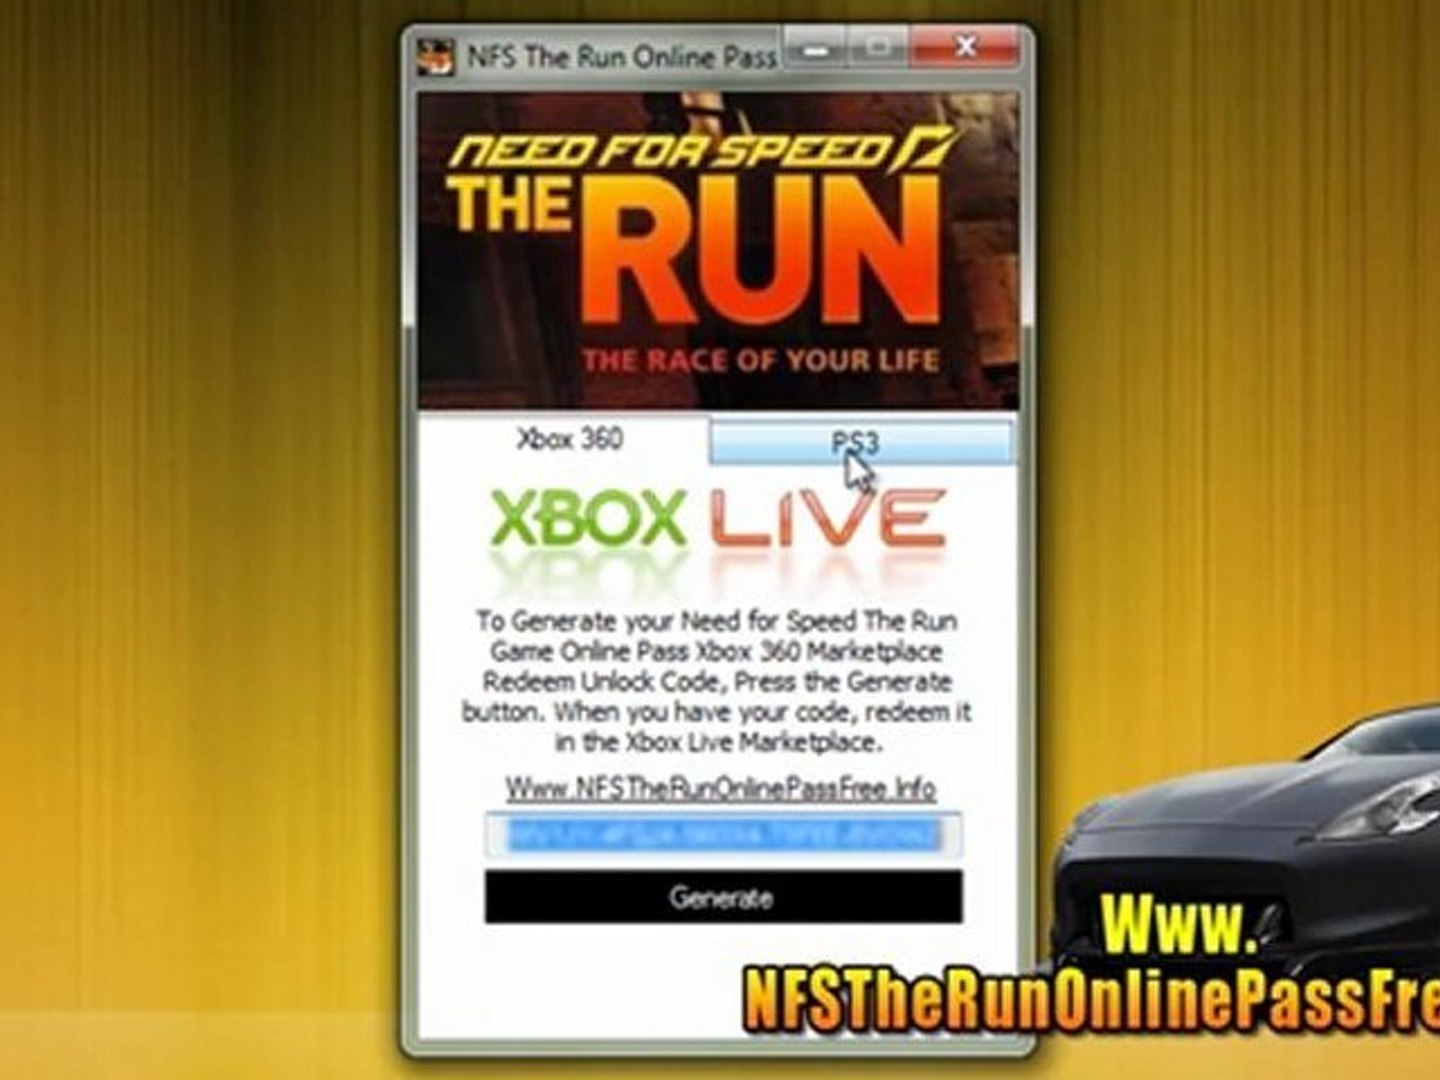 Need For Speed The Run Online Pass Code Unlock Tutorial Xbox 360